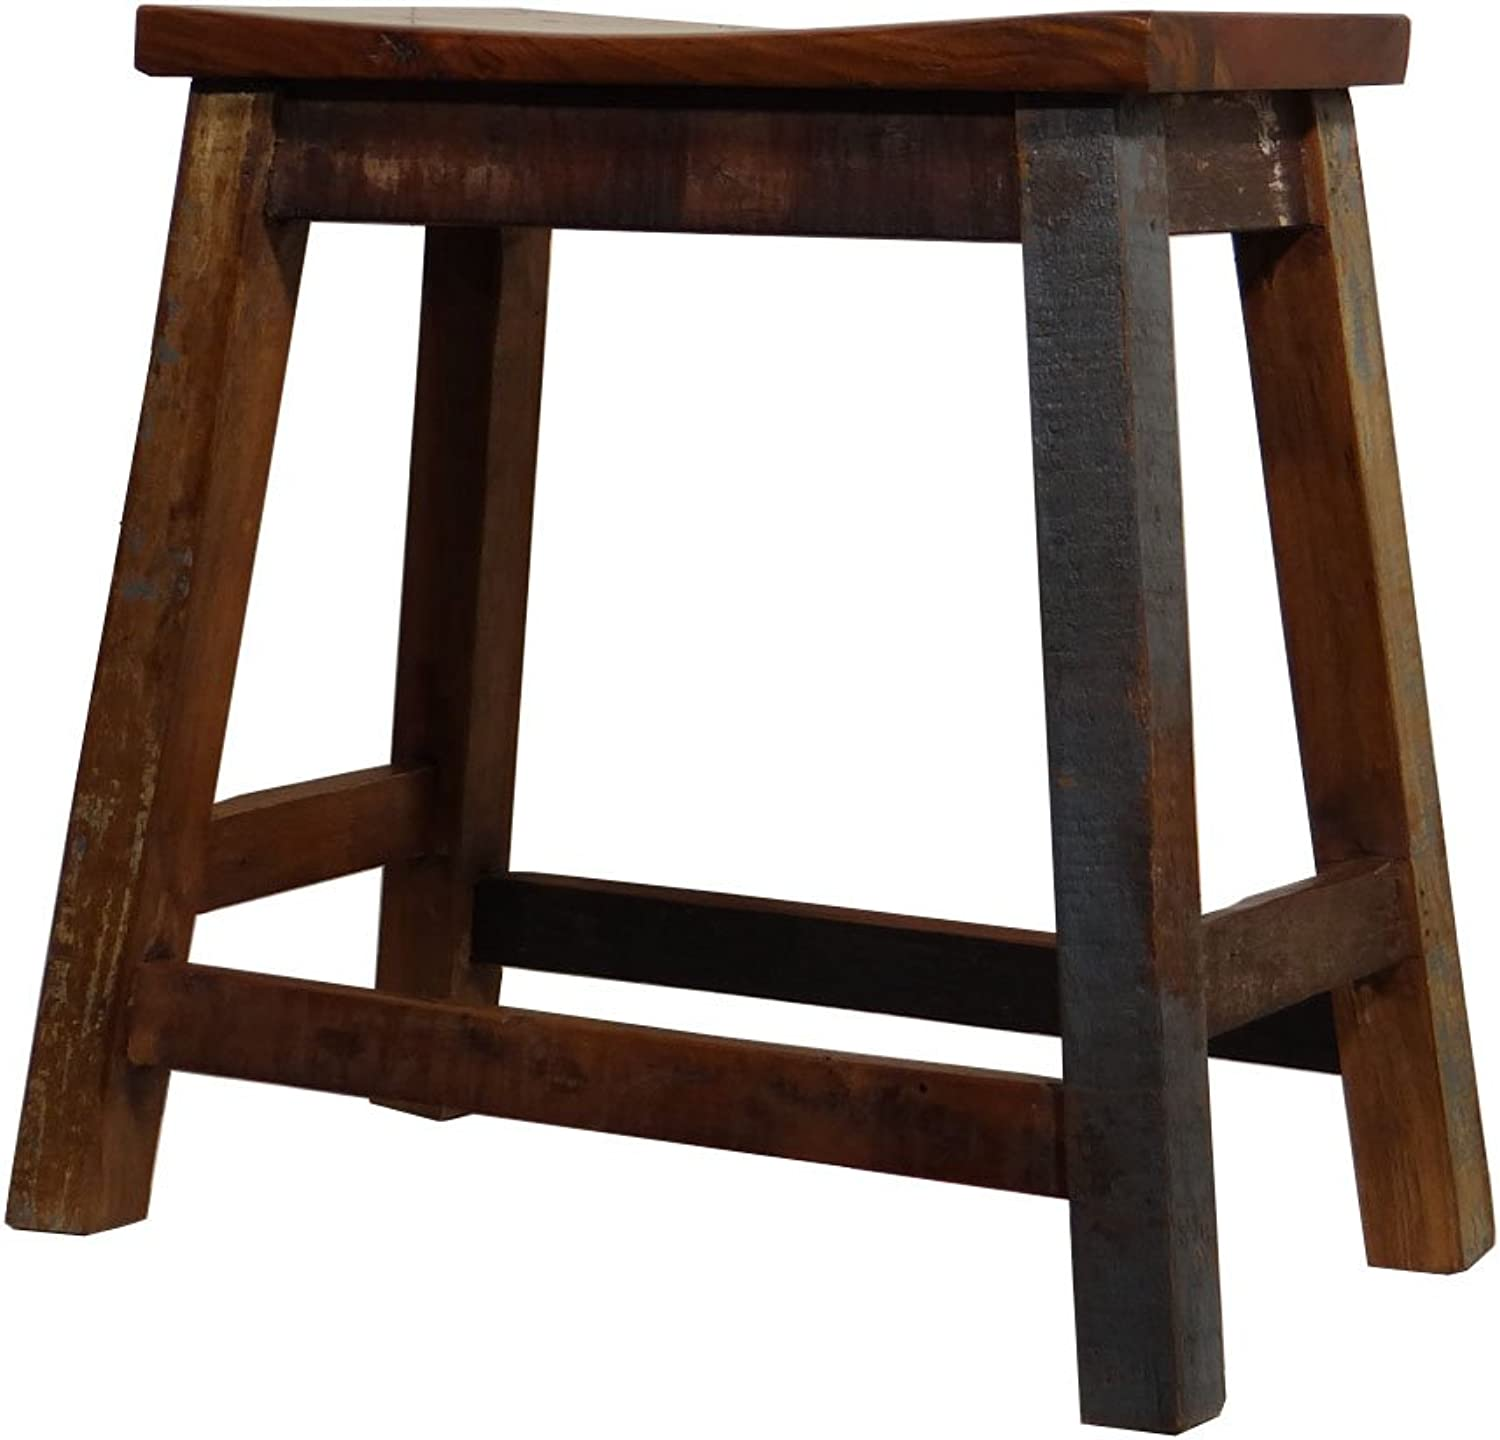 Present Company Reclaimed Wooden Stool Fairly Traded From India